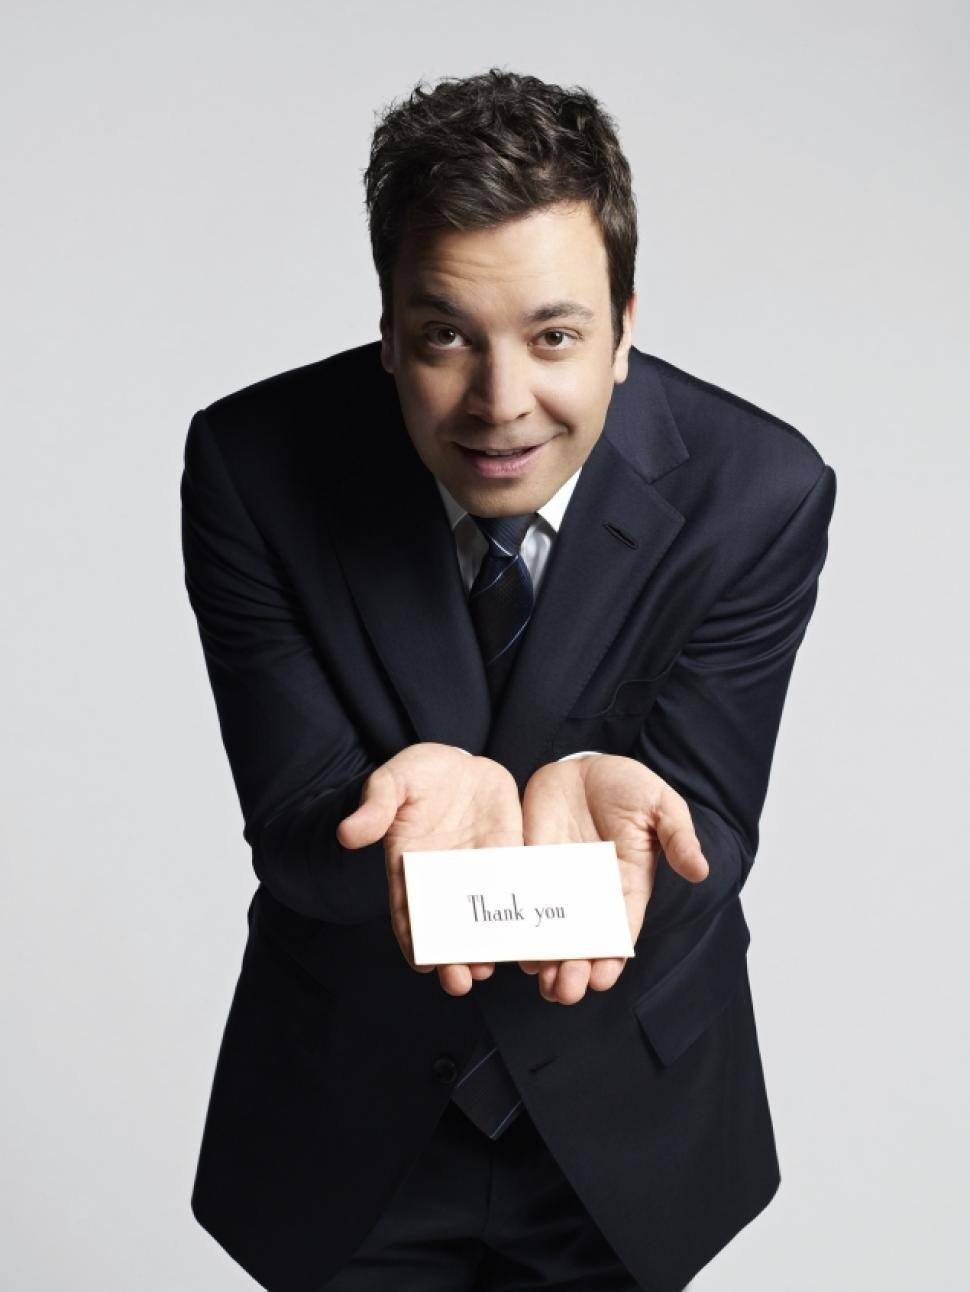 How well do you know Jimmy Fallon?